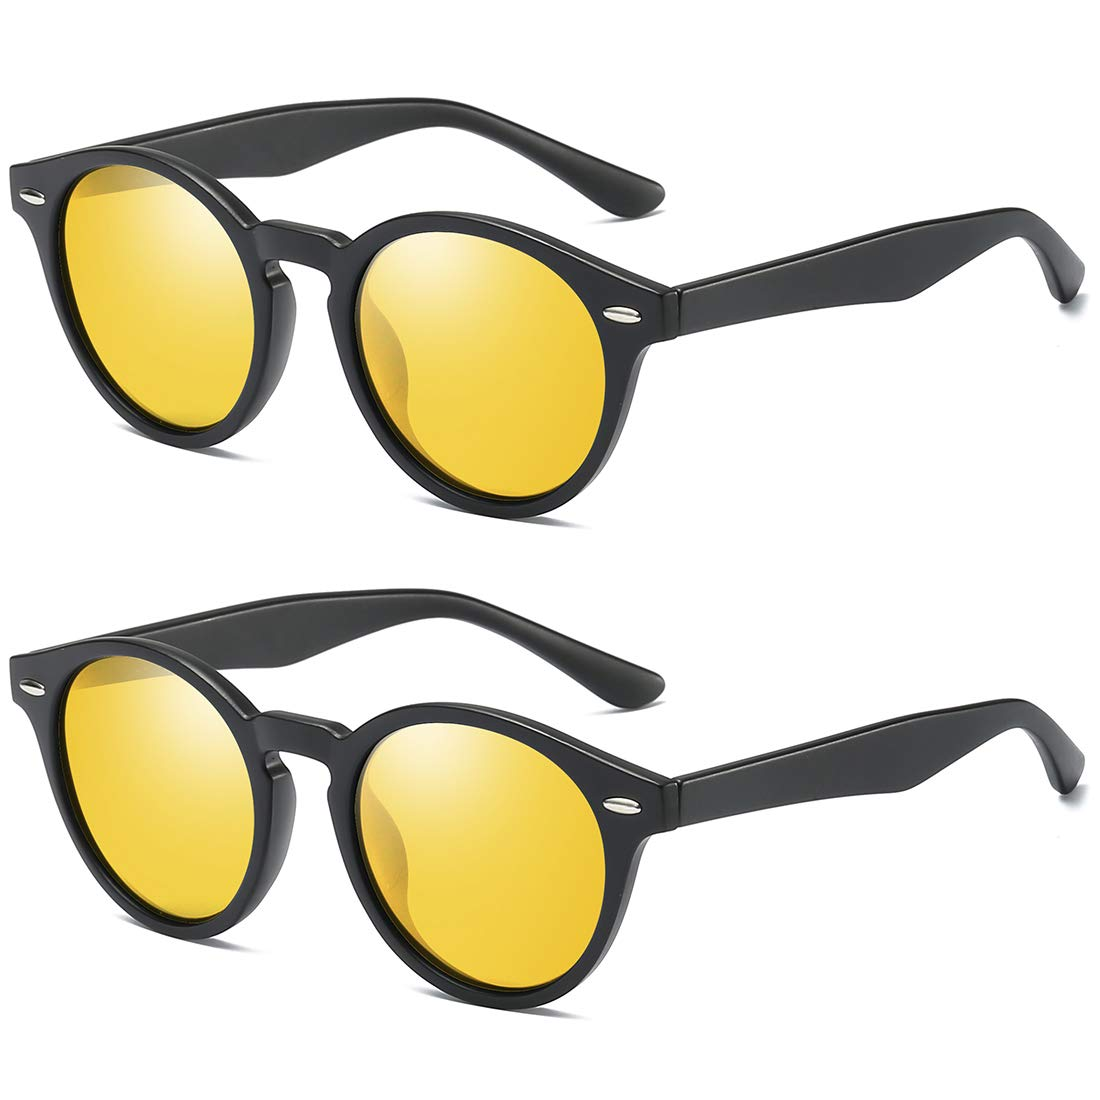 2 Pack Night Driving Yellow Lens ROYAL GIRL Classic Round Retro Sunglasses For Women polarized Vintage Designer Style